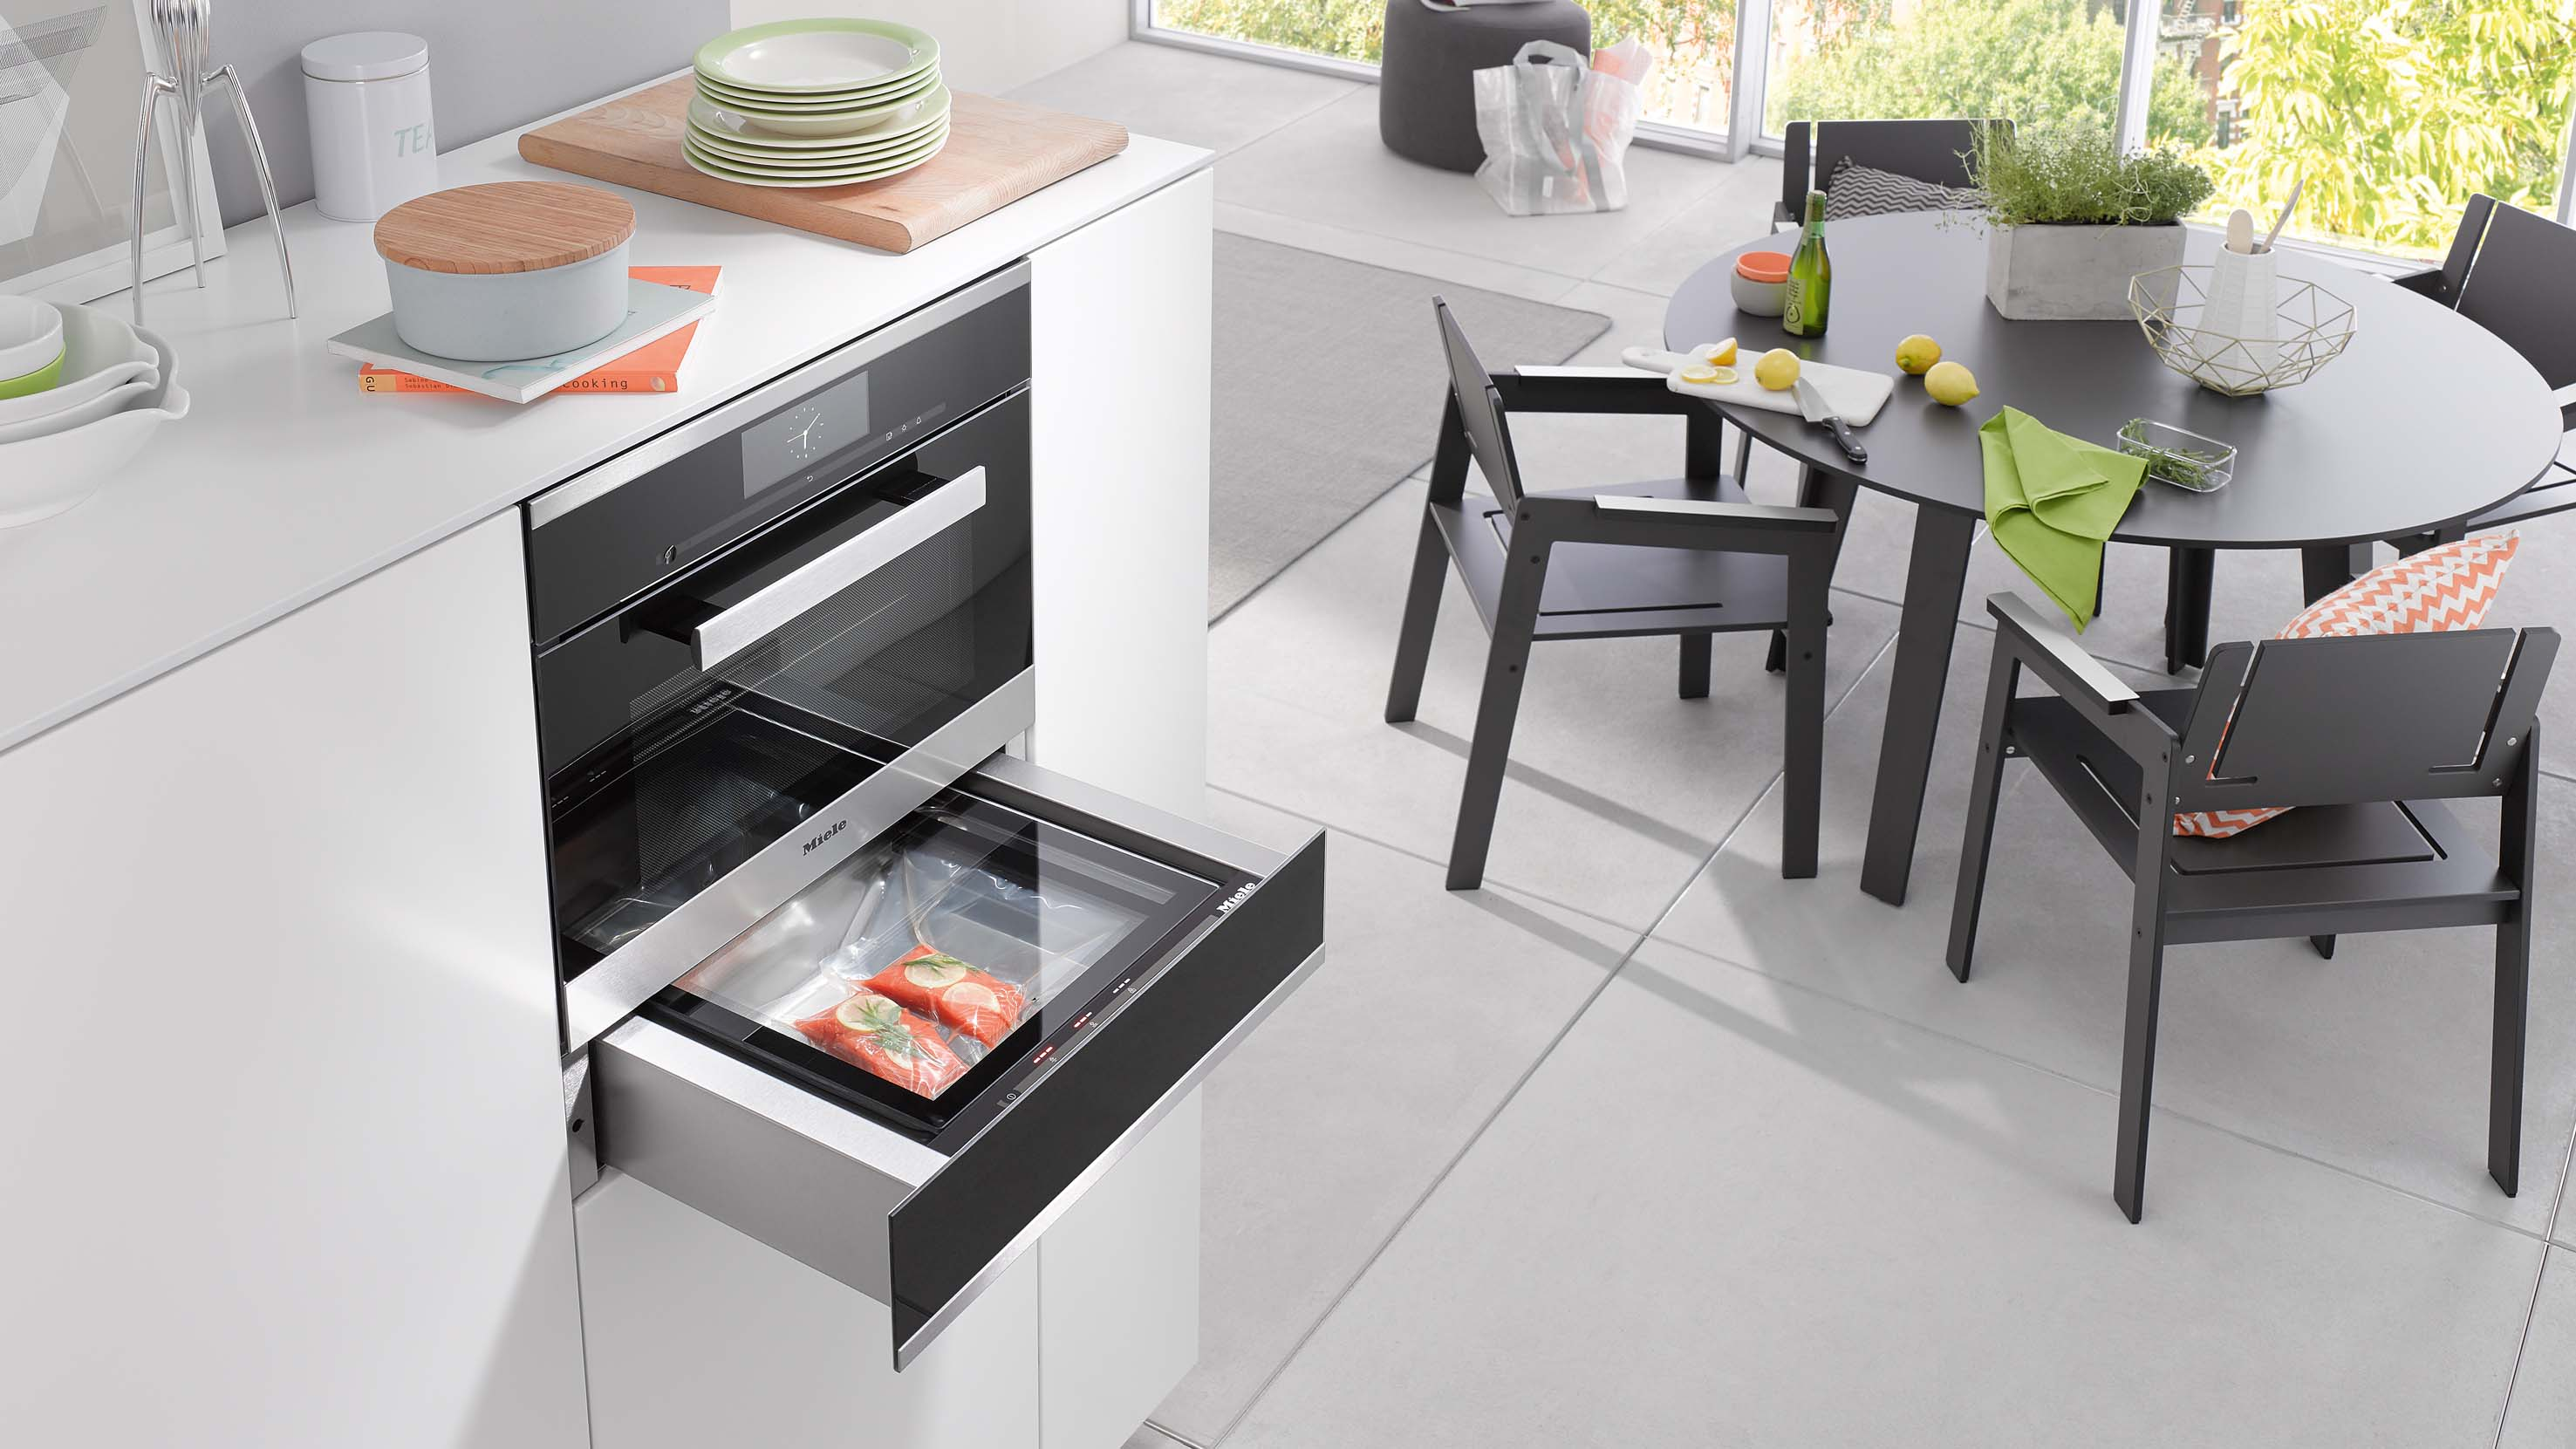 Miele Sous Vide Vacuum Sealing Drawer